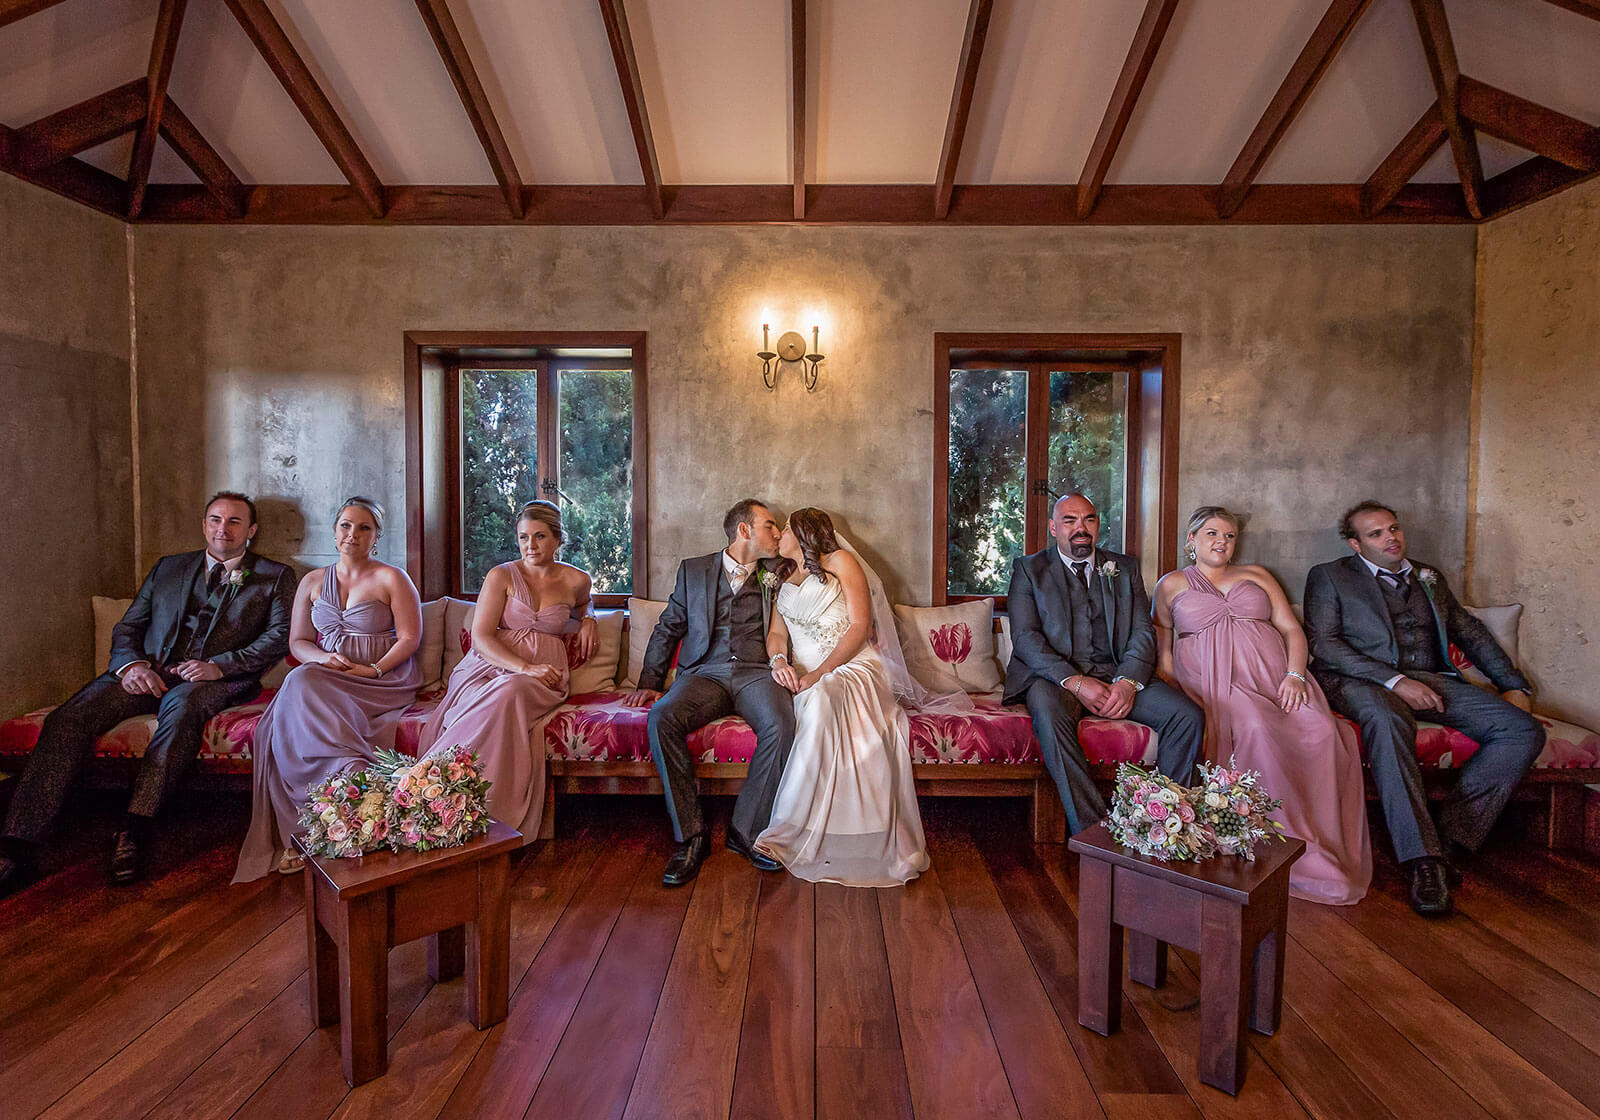 Cottesloe Civic Centre, Perth Wedding Photography by Peter Adams-Shawn